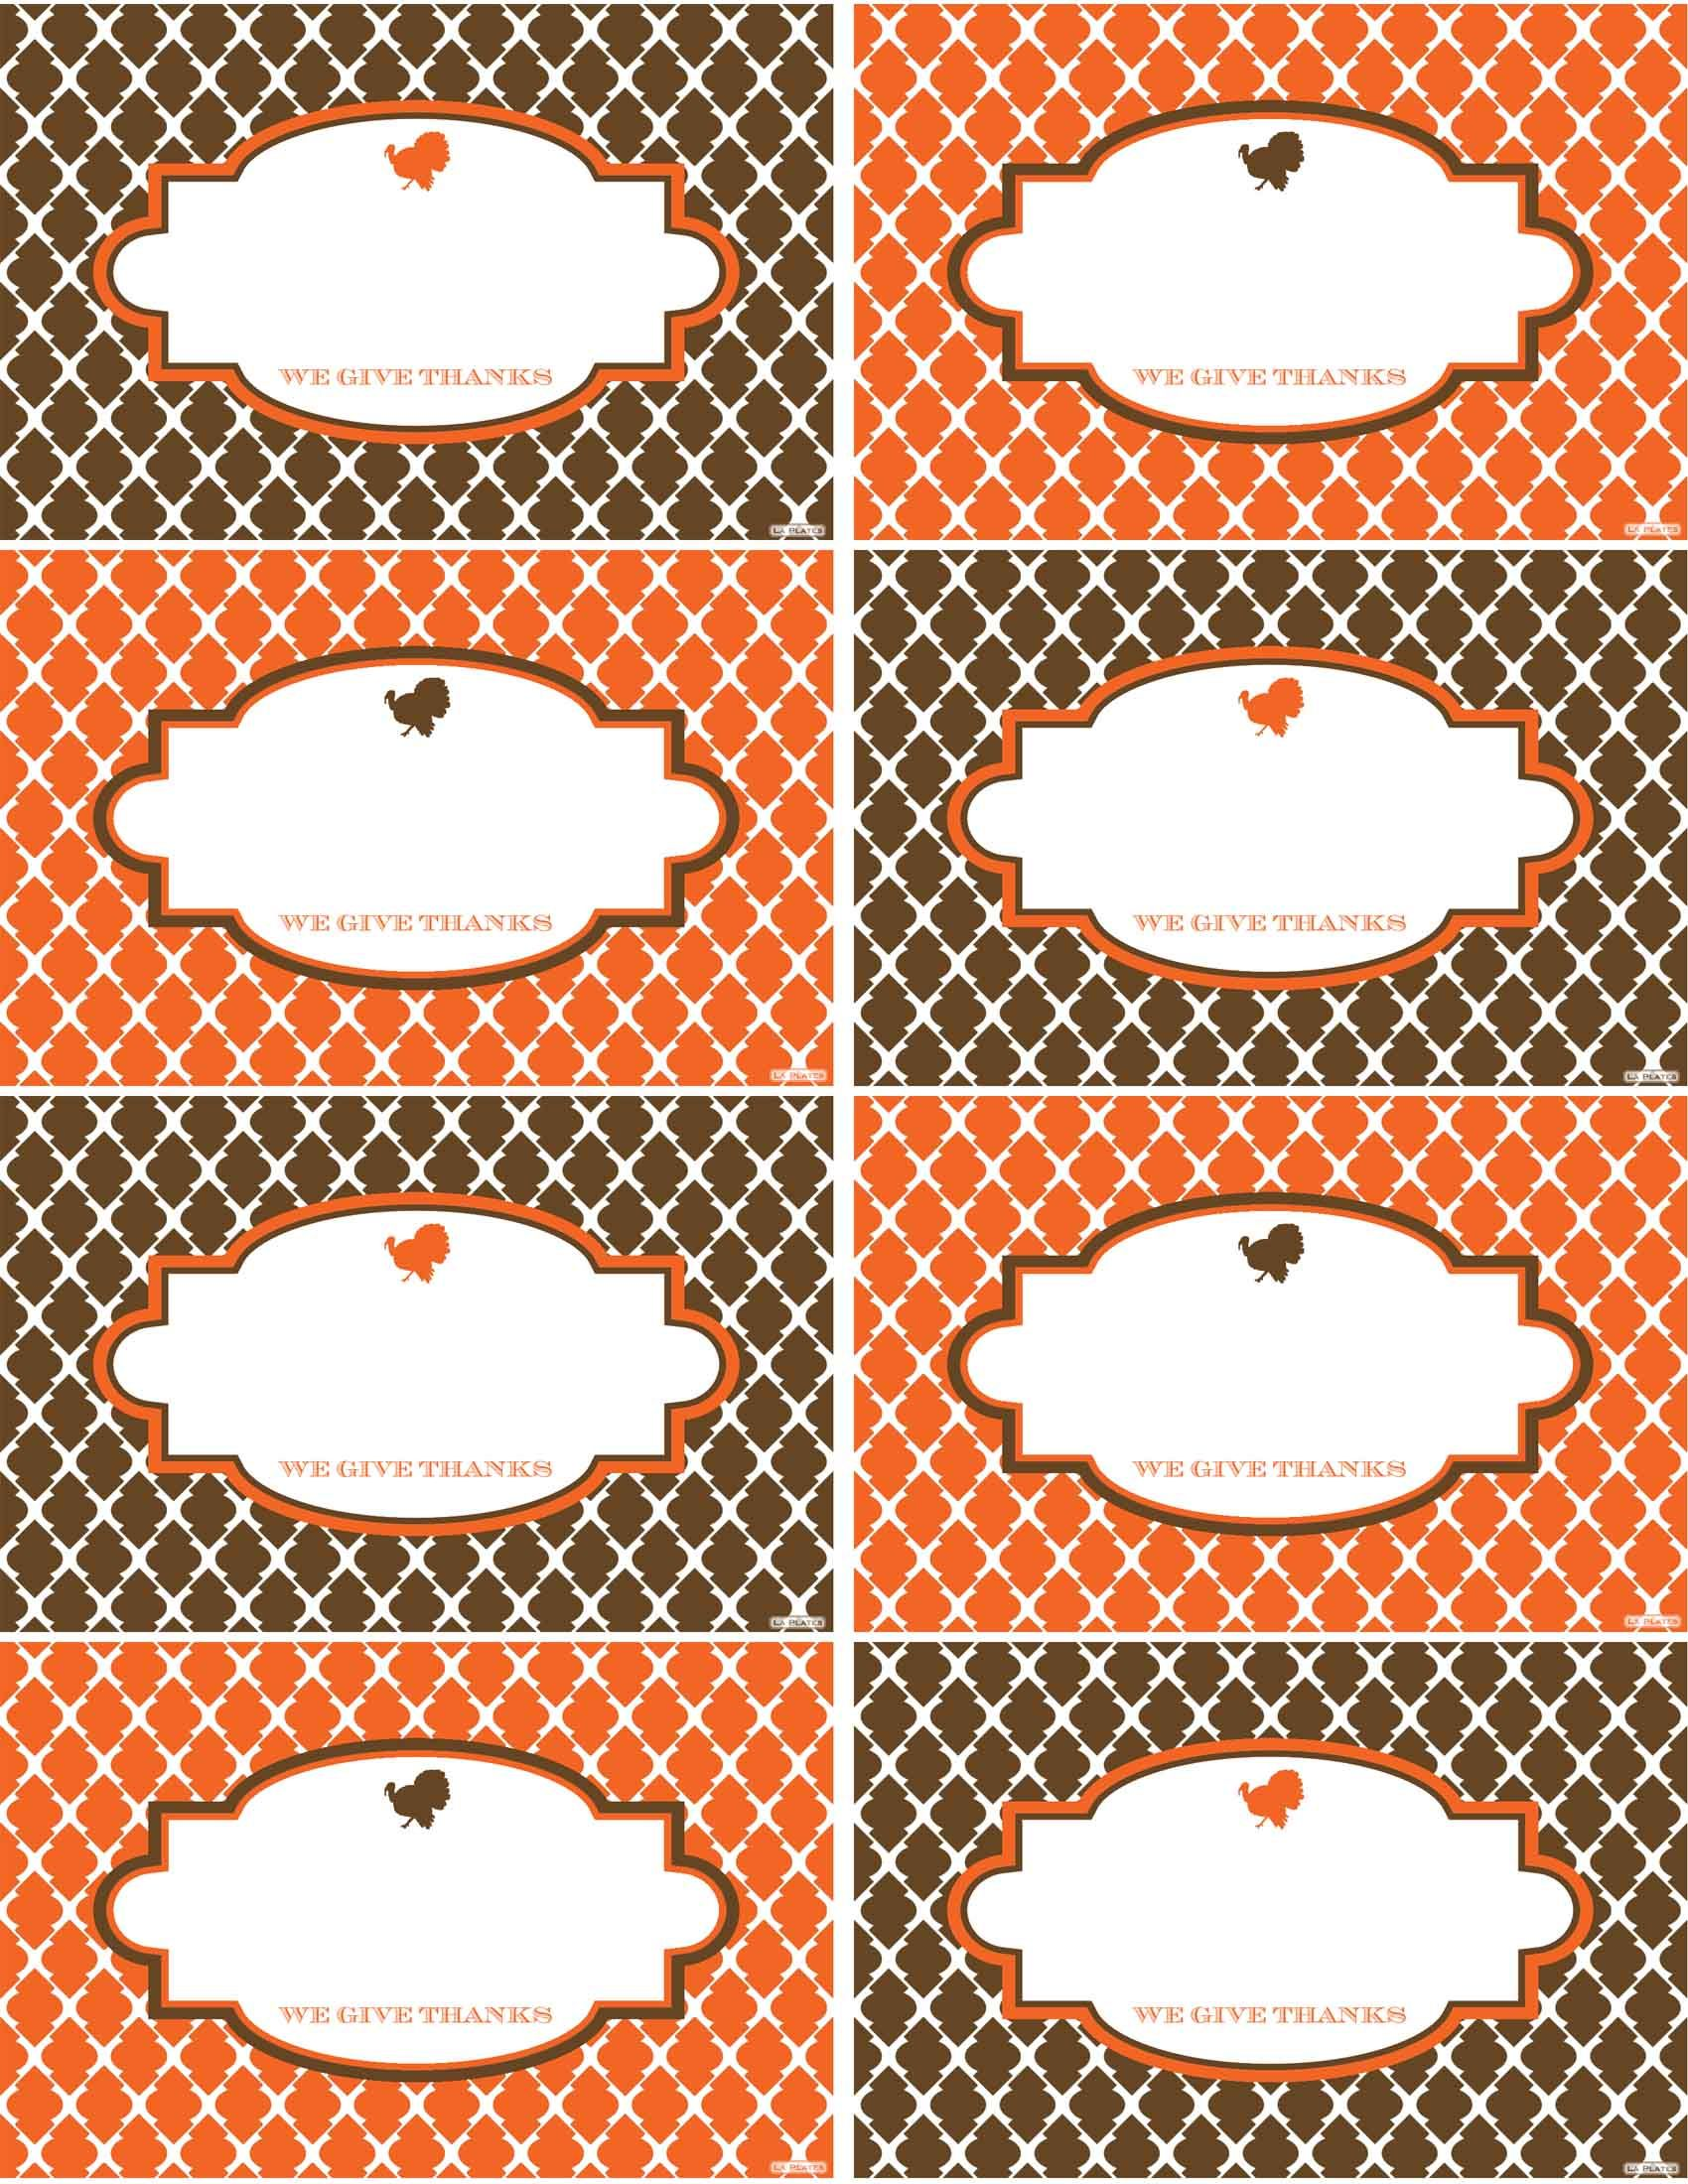 Pin By Lisa Anderson On Gobble Gobble Fun Thanksgiving Place Cards Place Card Template Cards